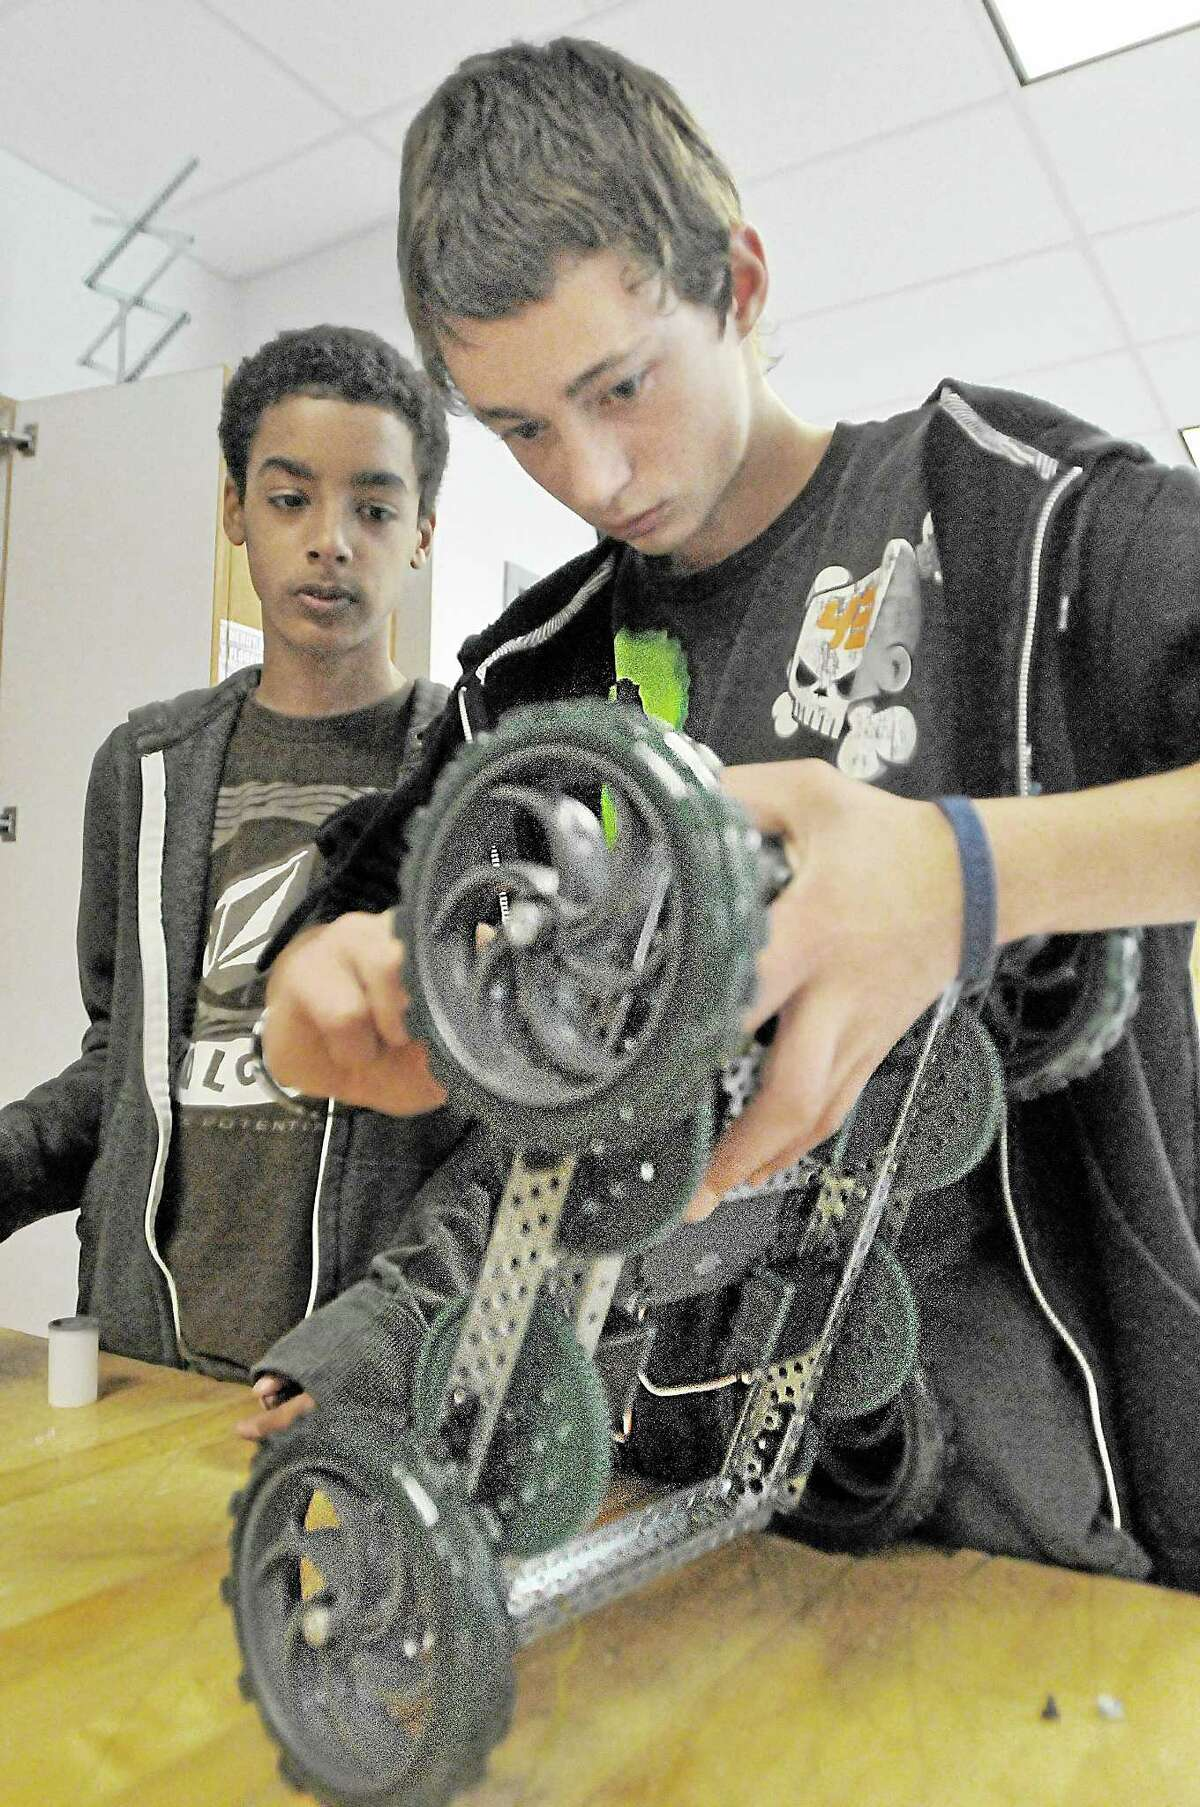 Students work on a robot frame in Sam Faulkenberry's robotics class at Middletown High School in this 2013 photograph.